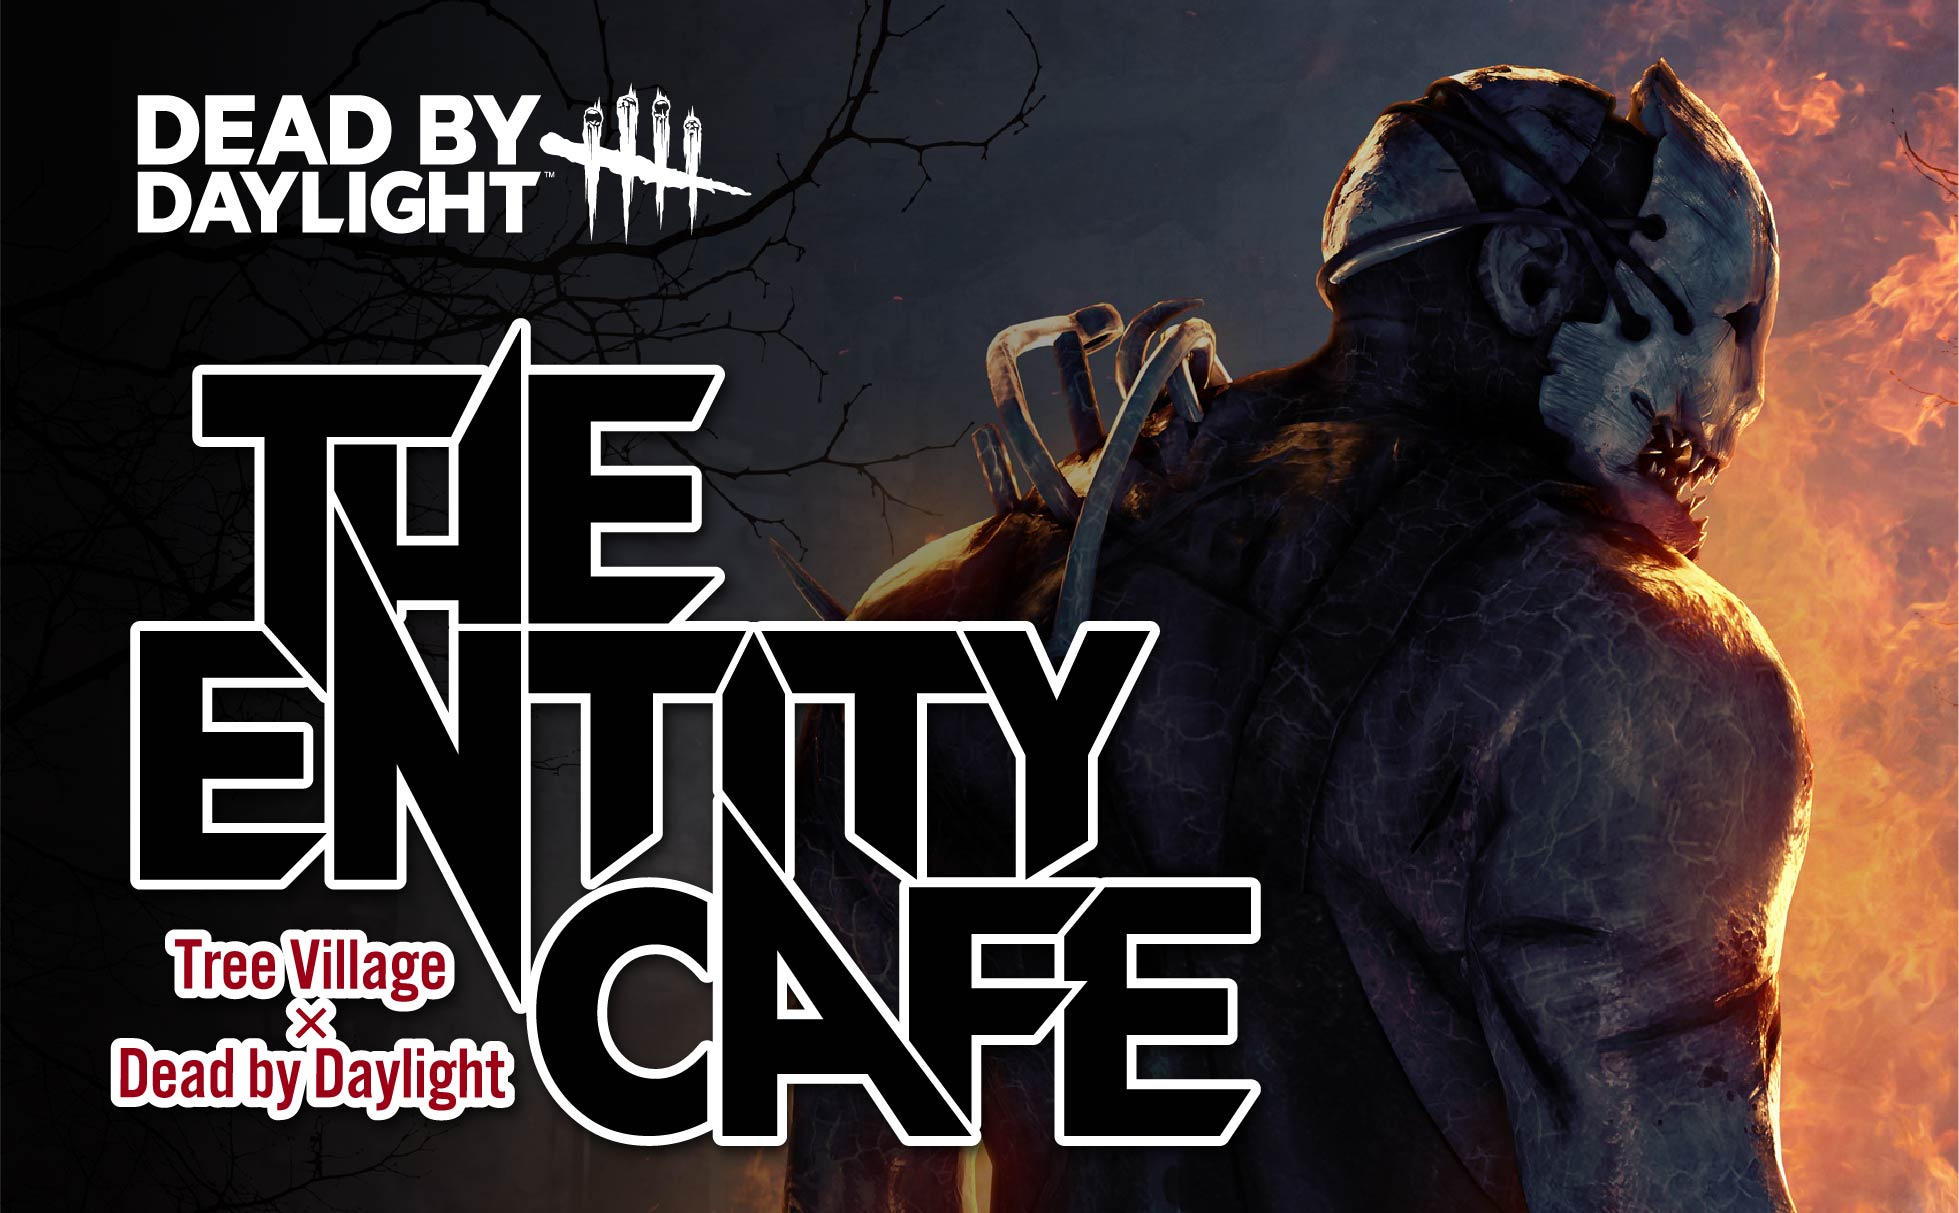 DEAD BY DAYLIGHT The Entity Cafe